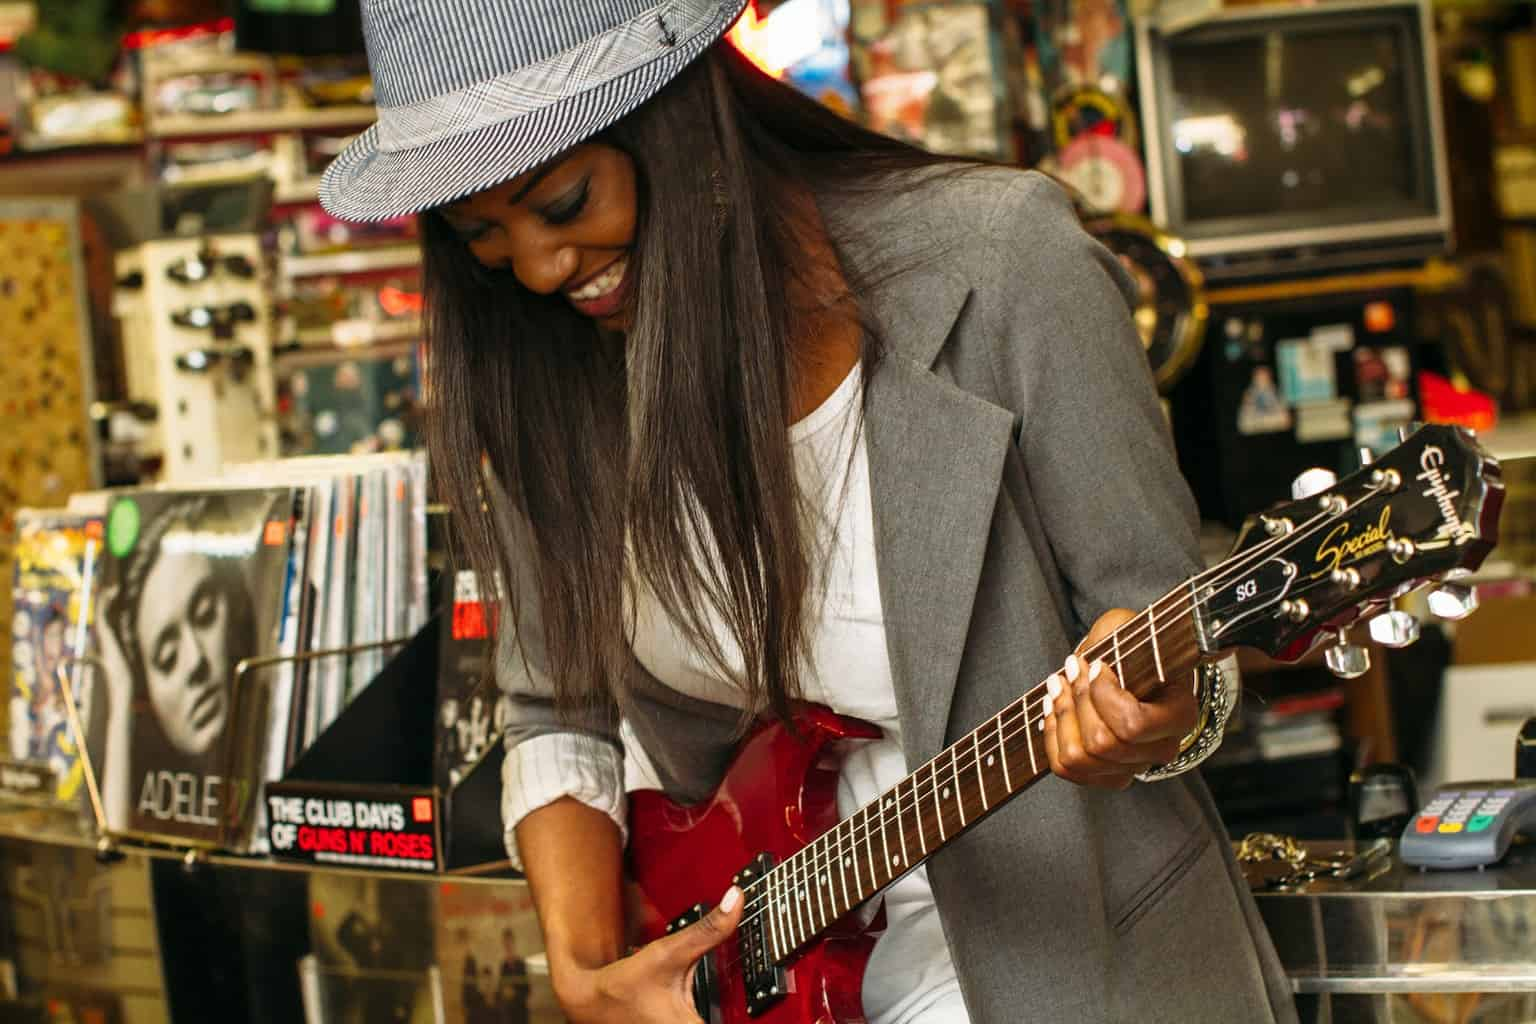 Female with grey hat on playing guitar